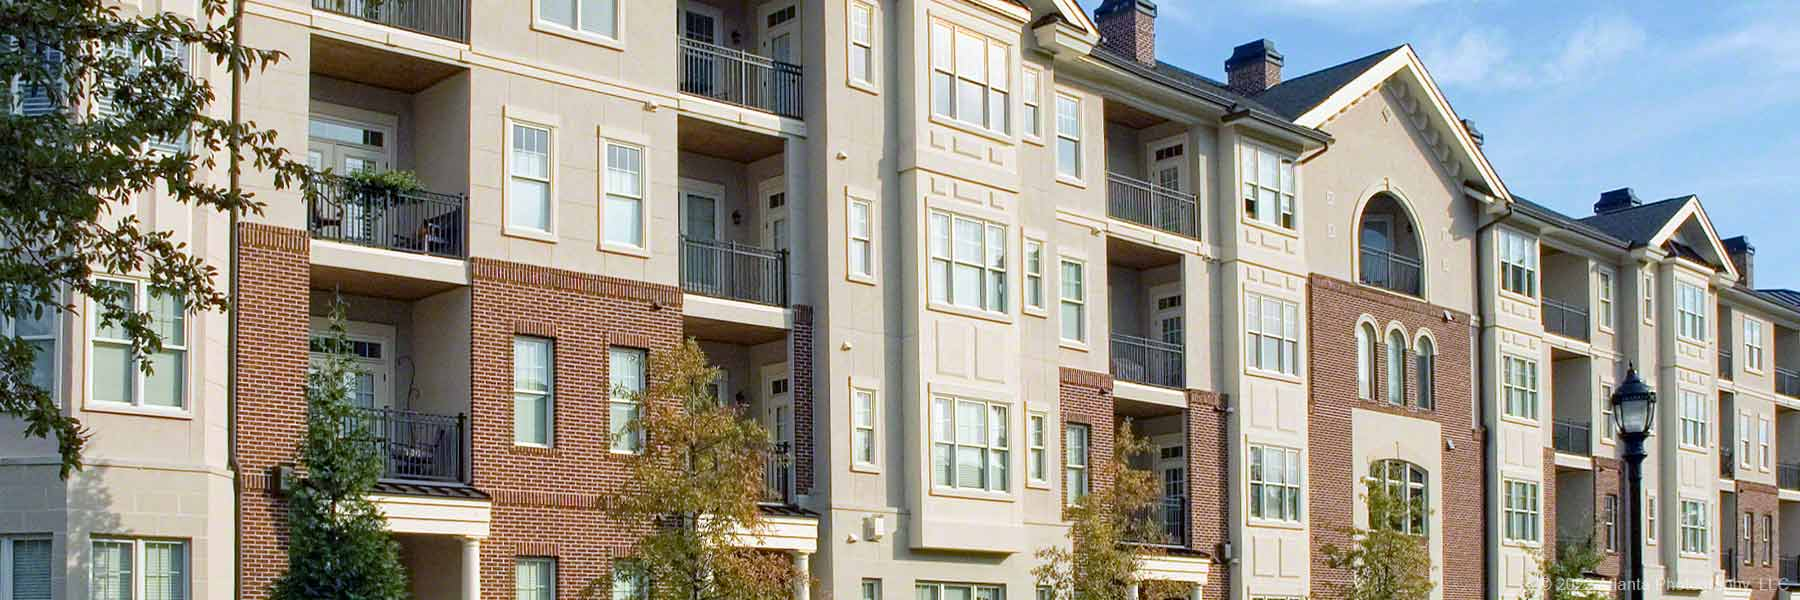 The Park At East Paces Newer Construction Condos And Townhouses In Atlanta S Upscale